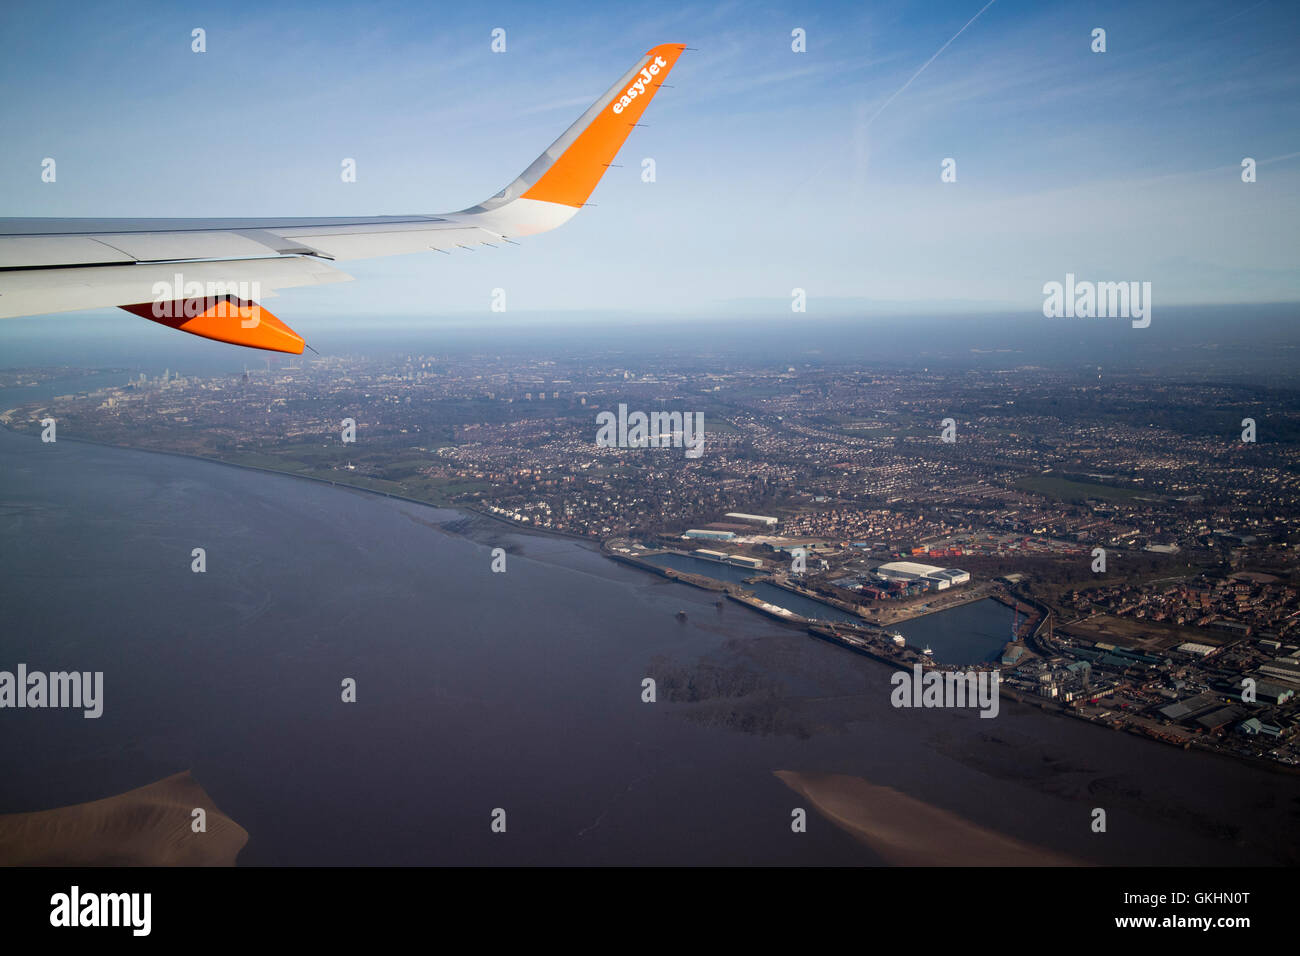 aerial view of easyjet aircraft flying over garston and speke Liverpool and the river Mersey - Stock Image